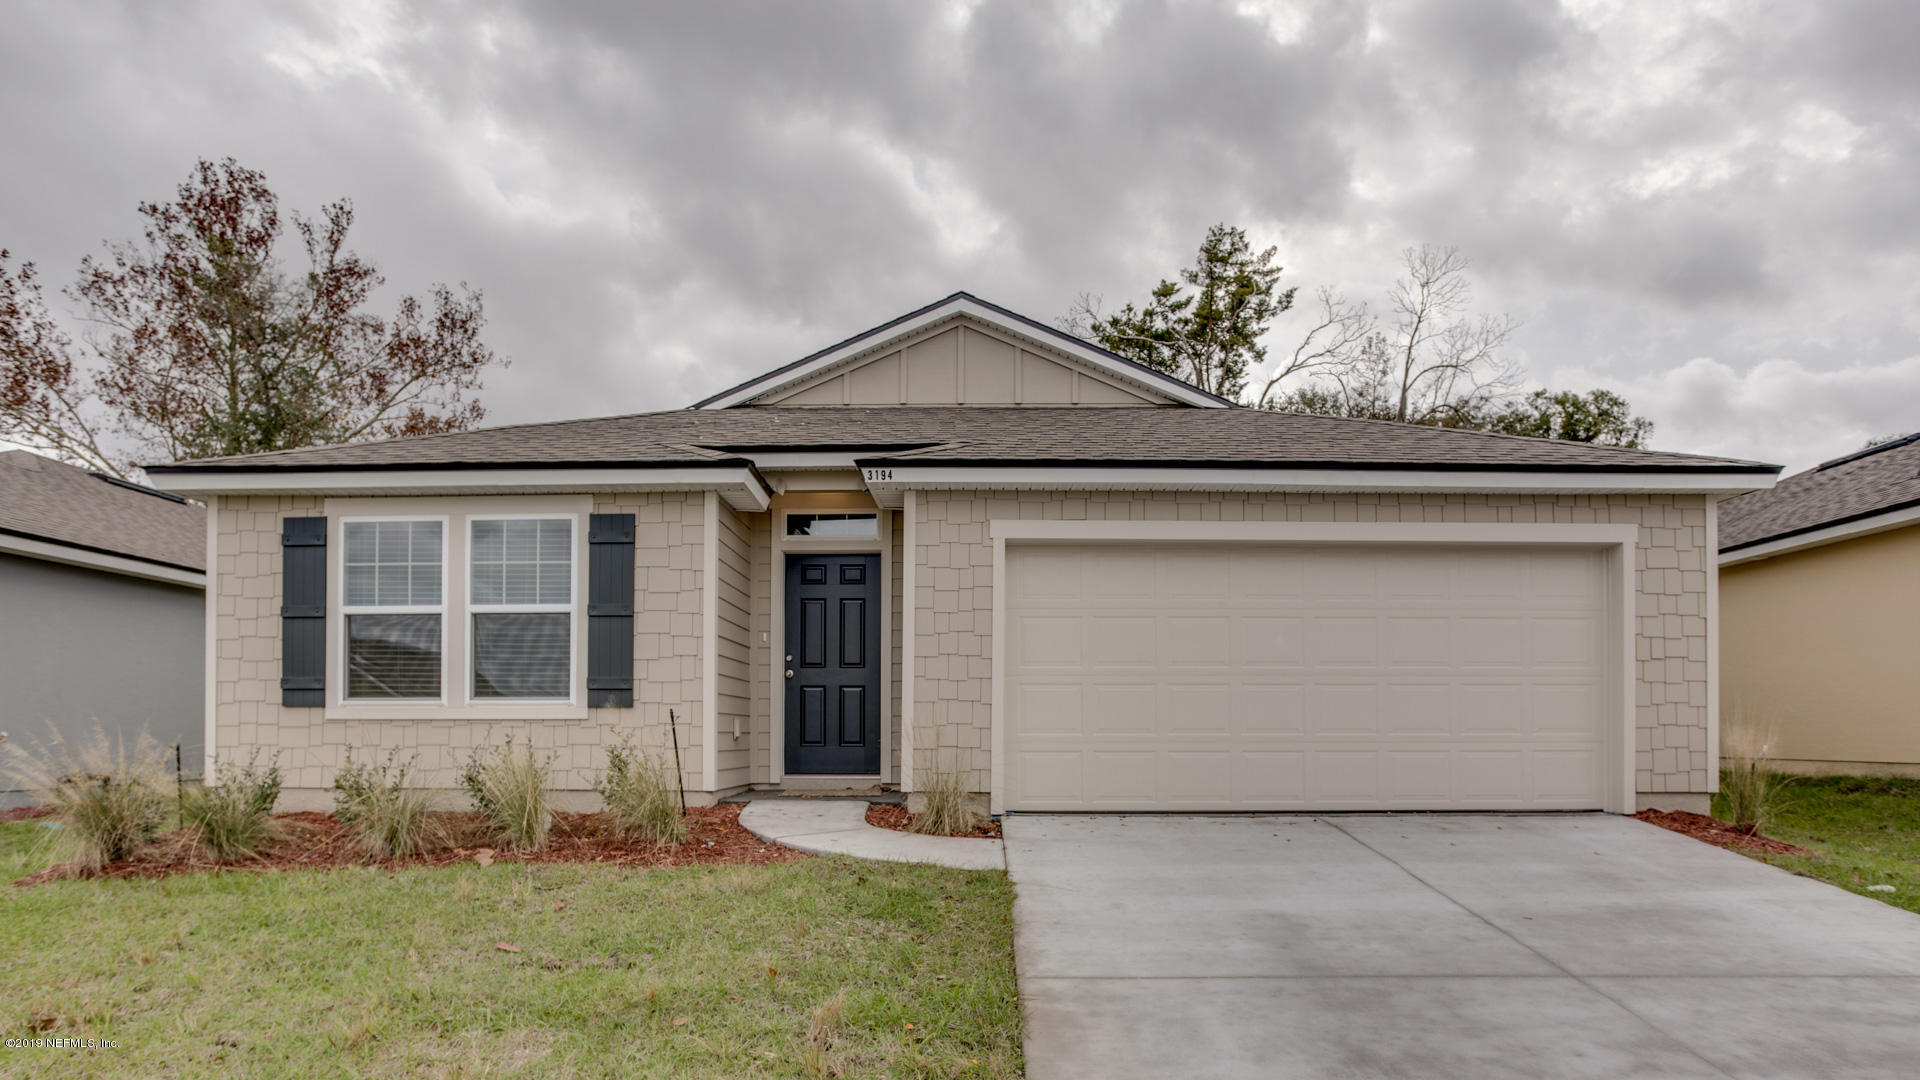 3194 ROGERS, JACKSONVILLE, FLORIDA 32208, 4 Bedrooms Bedrooms, ,2 BathroomsBathrooms,Residential - single family,For sale,ROGERS,953146